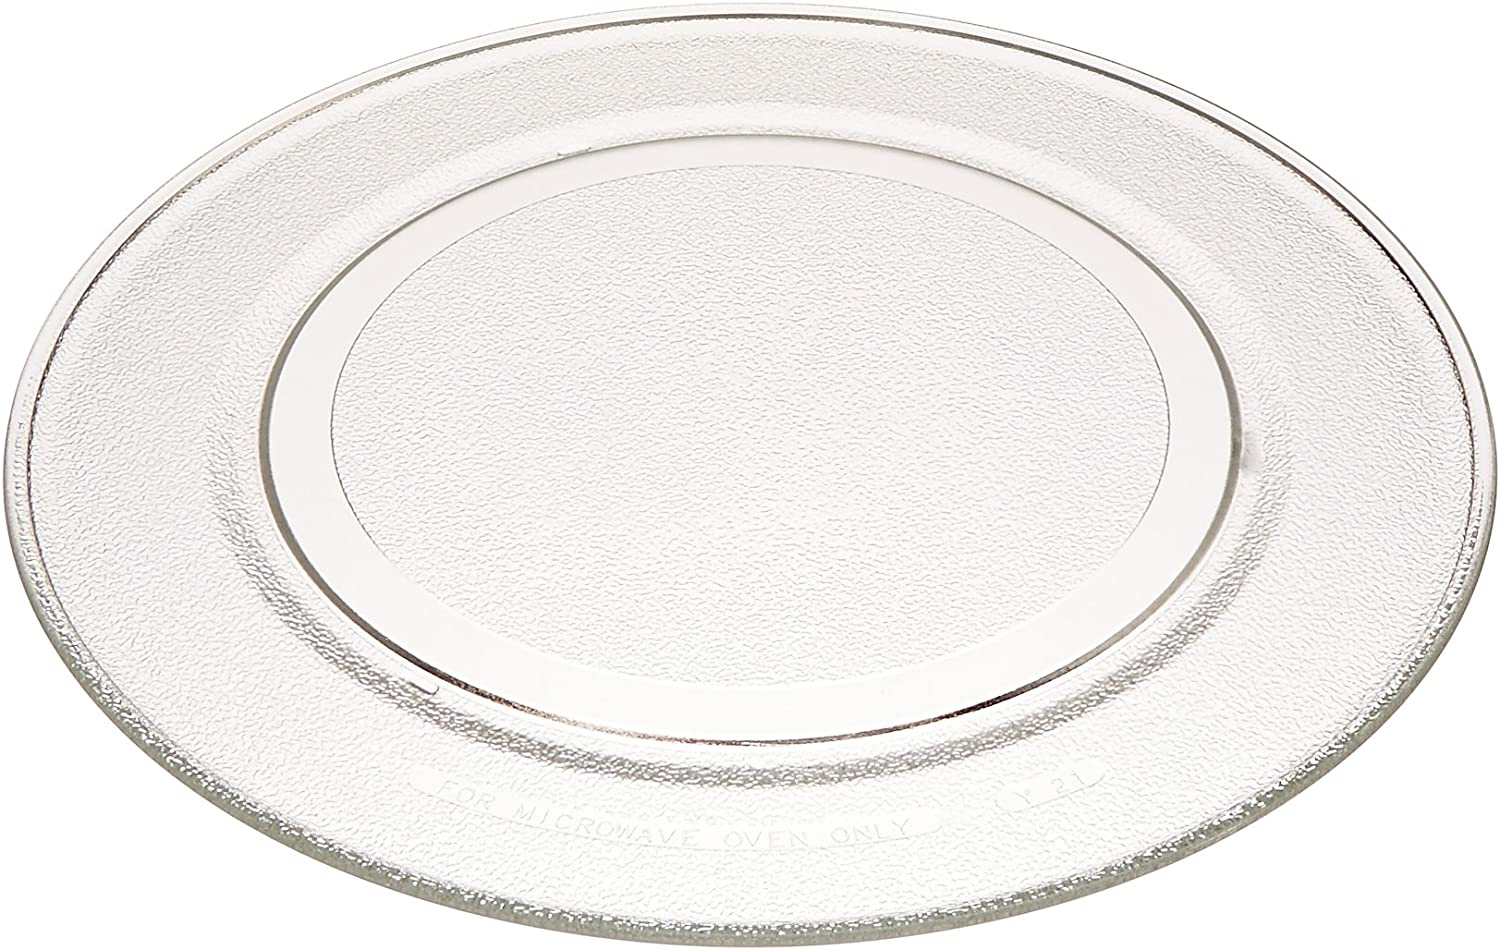 General Electric WB49X10135 Microwave Glass Tray